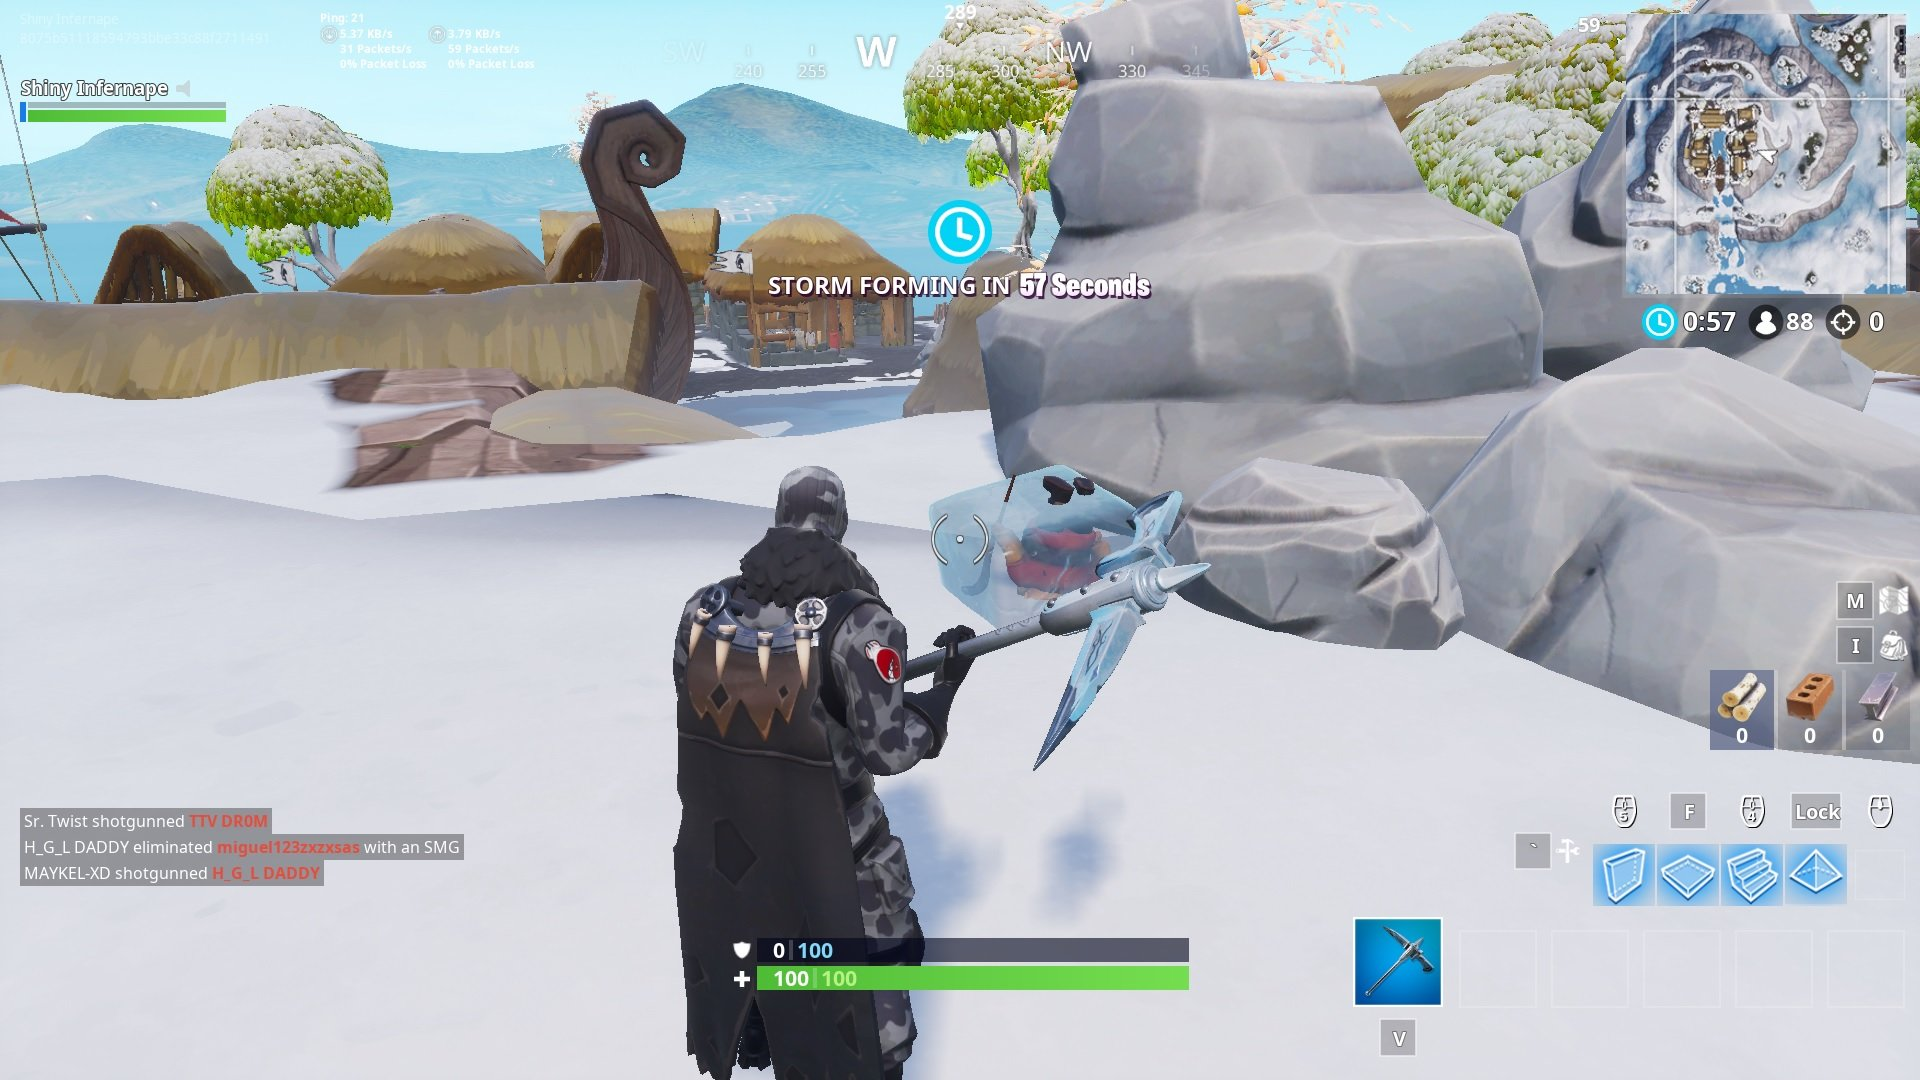 Where to search chilly gnomes in Fortnite season 7